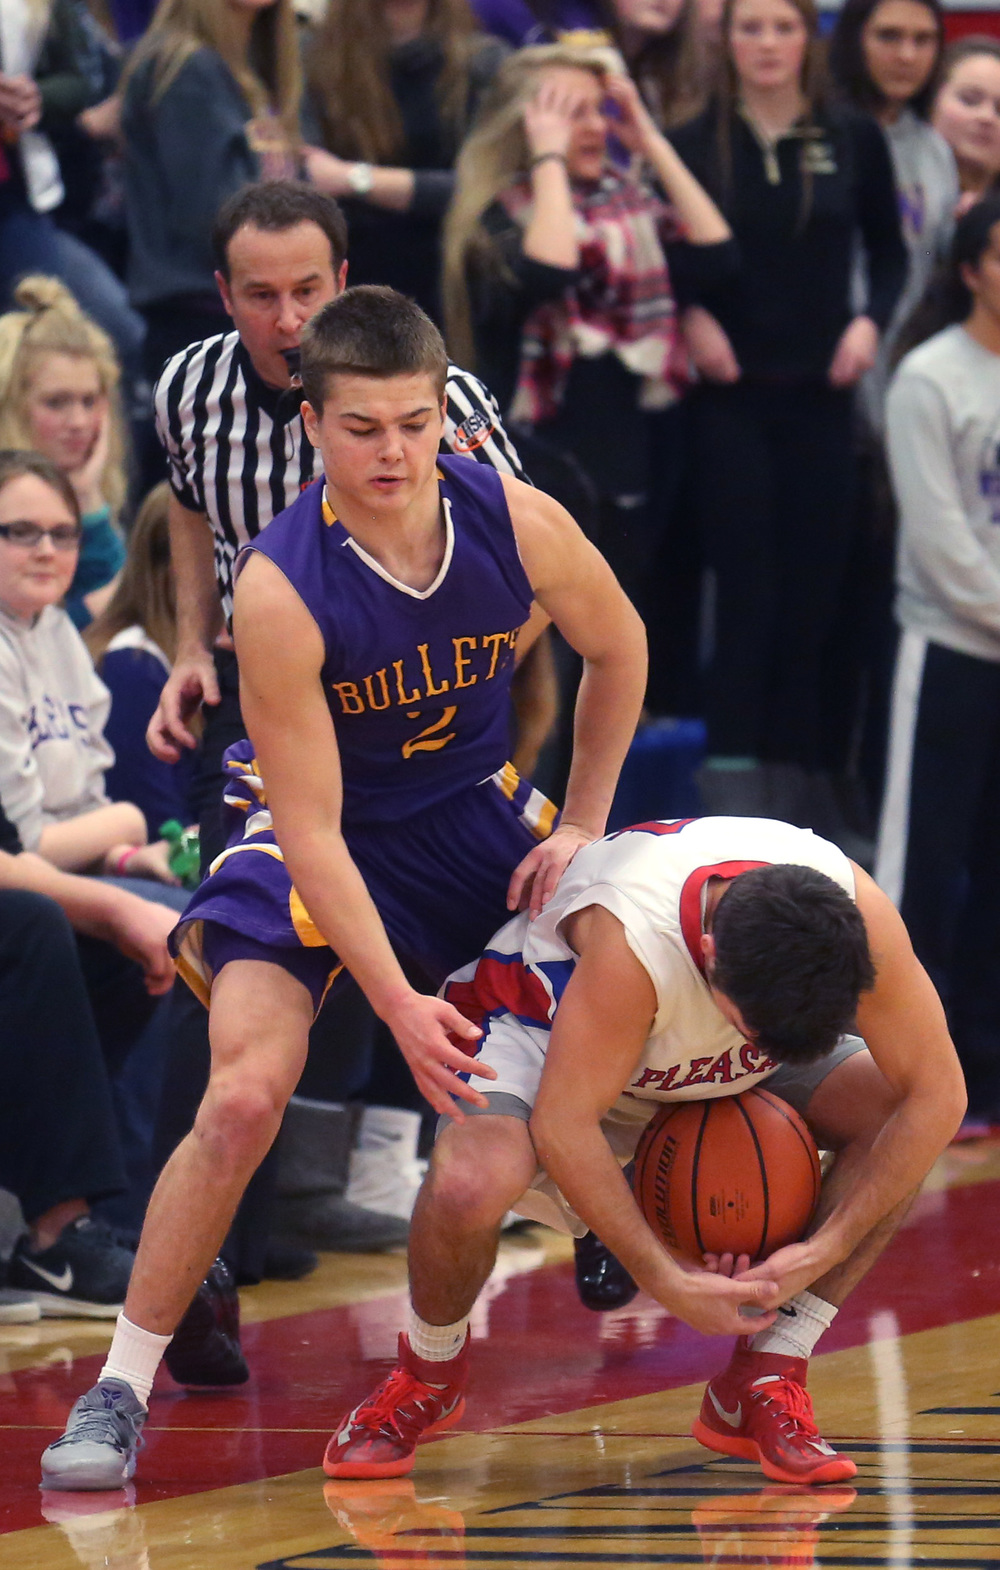 Plains player Aden Sachs keeps control of the ball late in the game while Williamsville player Zack Dellert defends. David Spencer/The State Journal Register